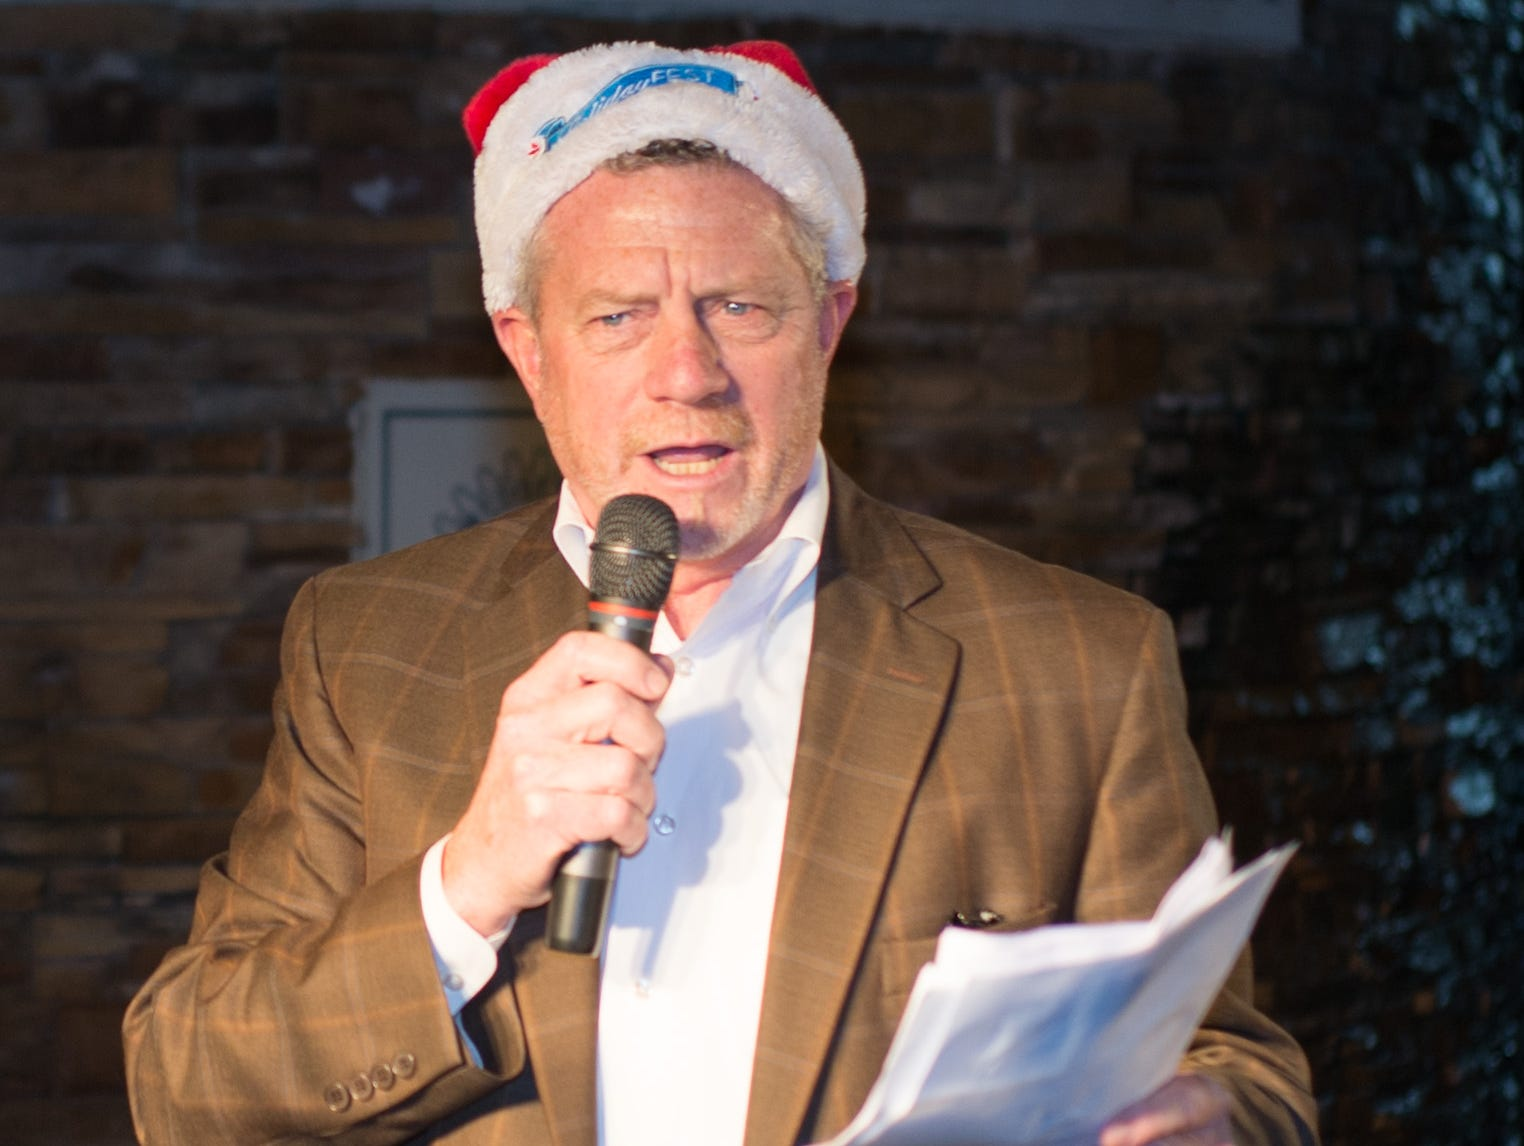 2018 HolidayFest President Larry Phillips speaks during the Hendersonville HolidayFest Annual Tree Lighting Ceremony at Memorial Park on Sunday, Nov. 25.